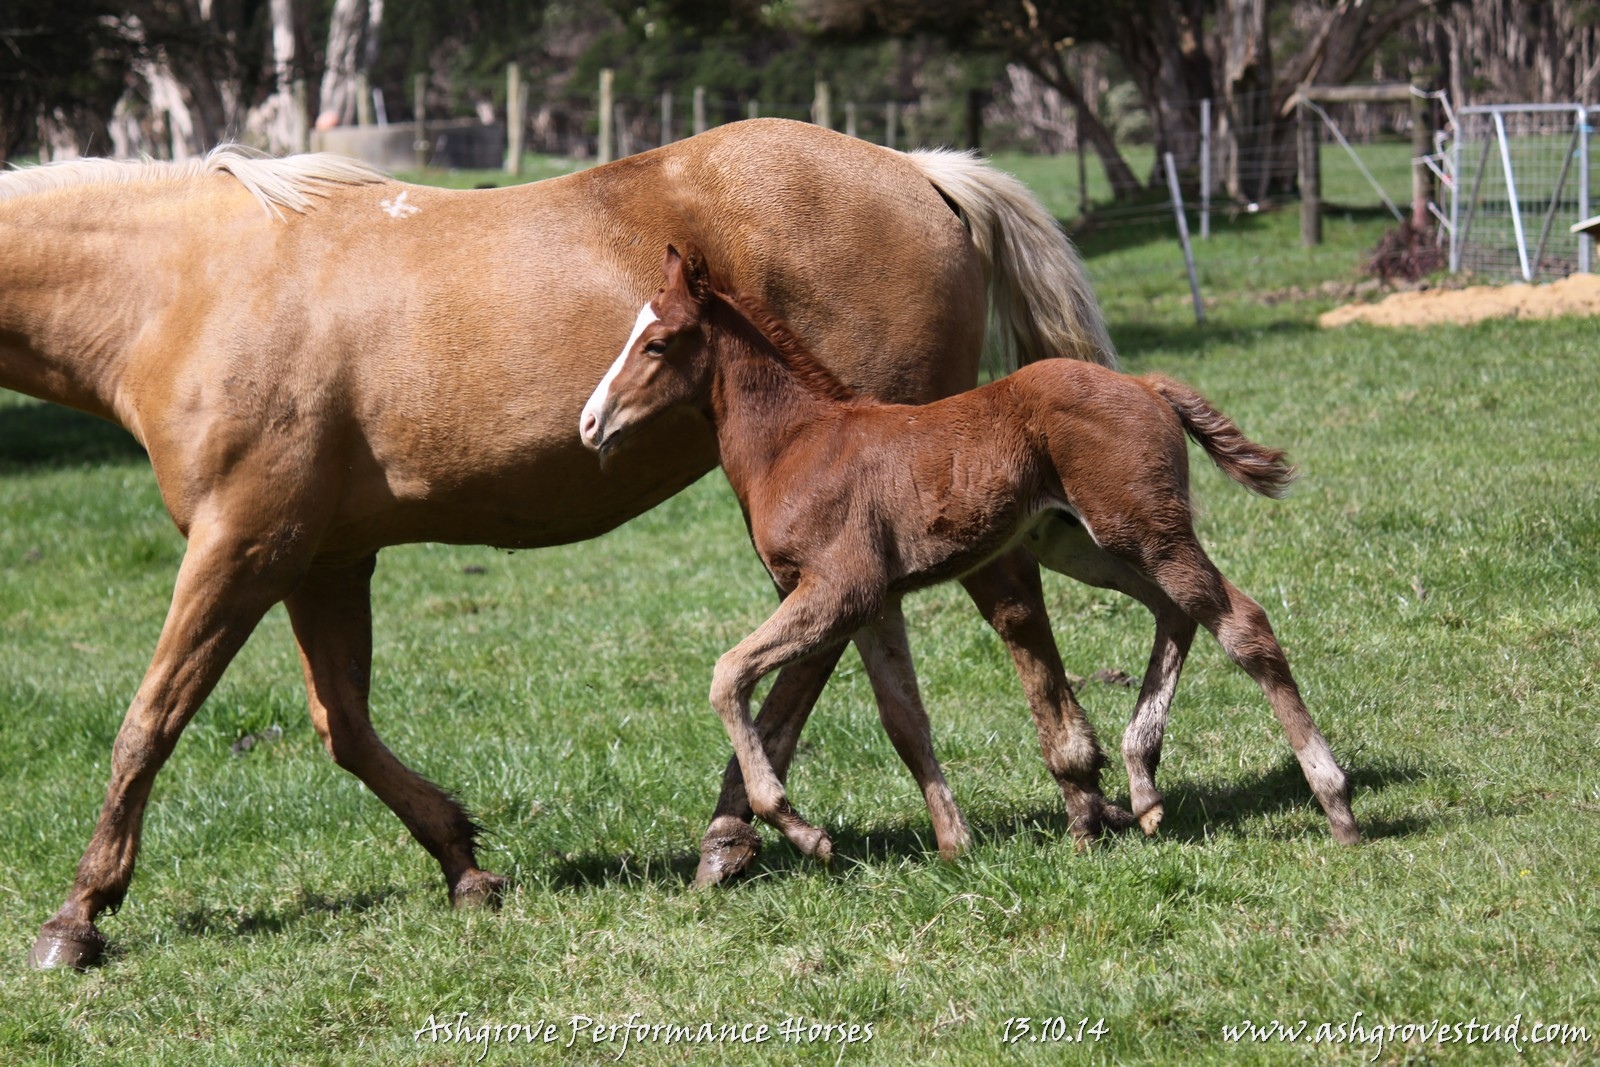 Foals and yearlings 13.10.14 132